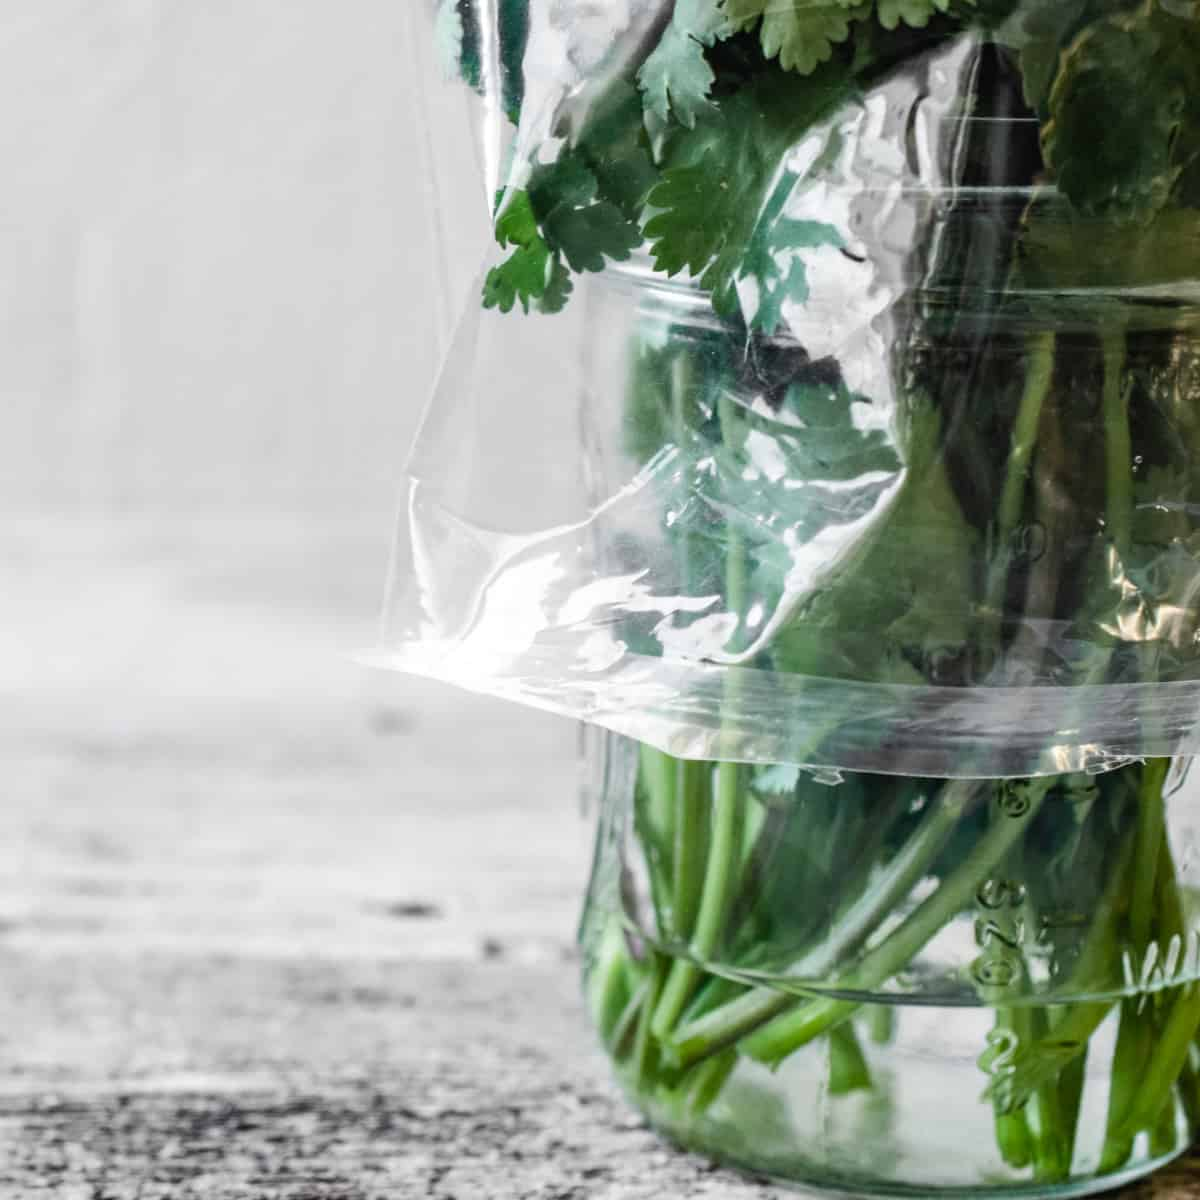 Cilantro stems in a jar with water, covered with a plastic bag.